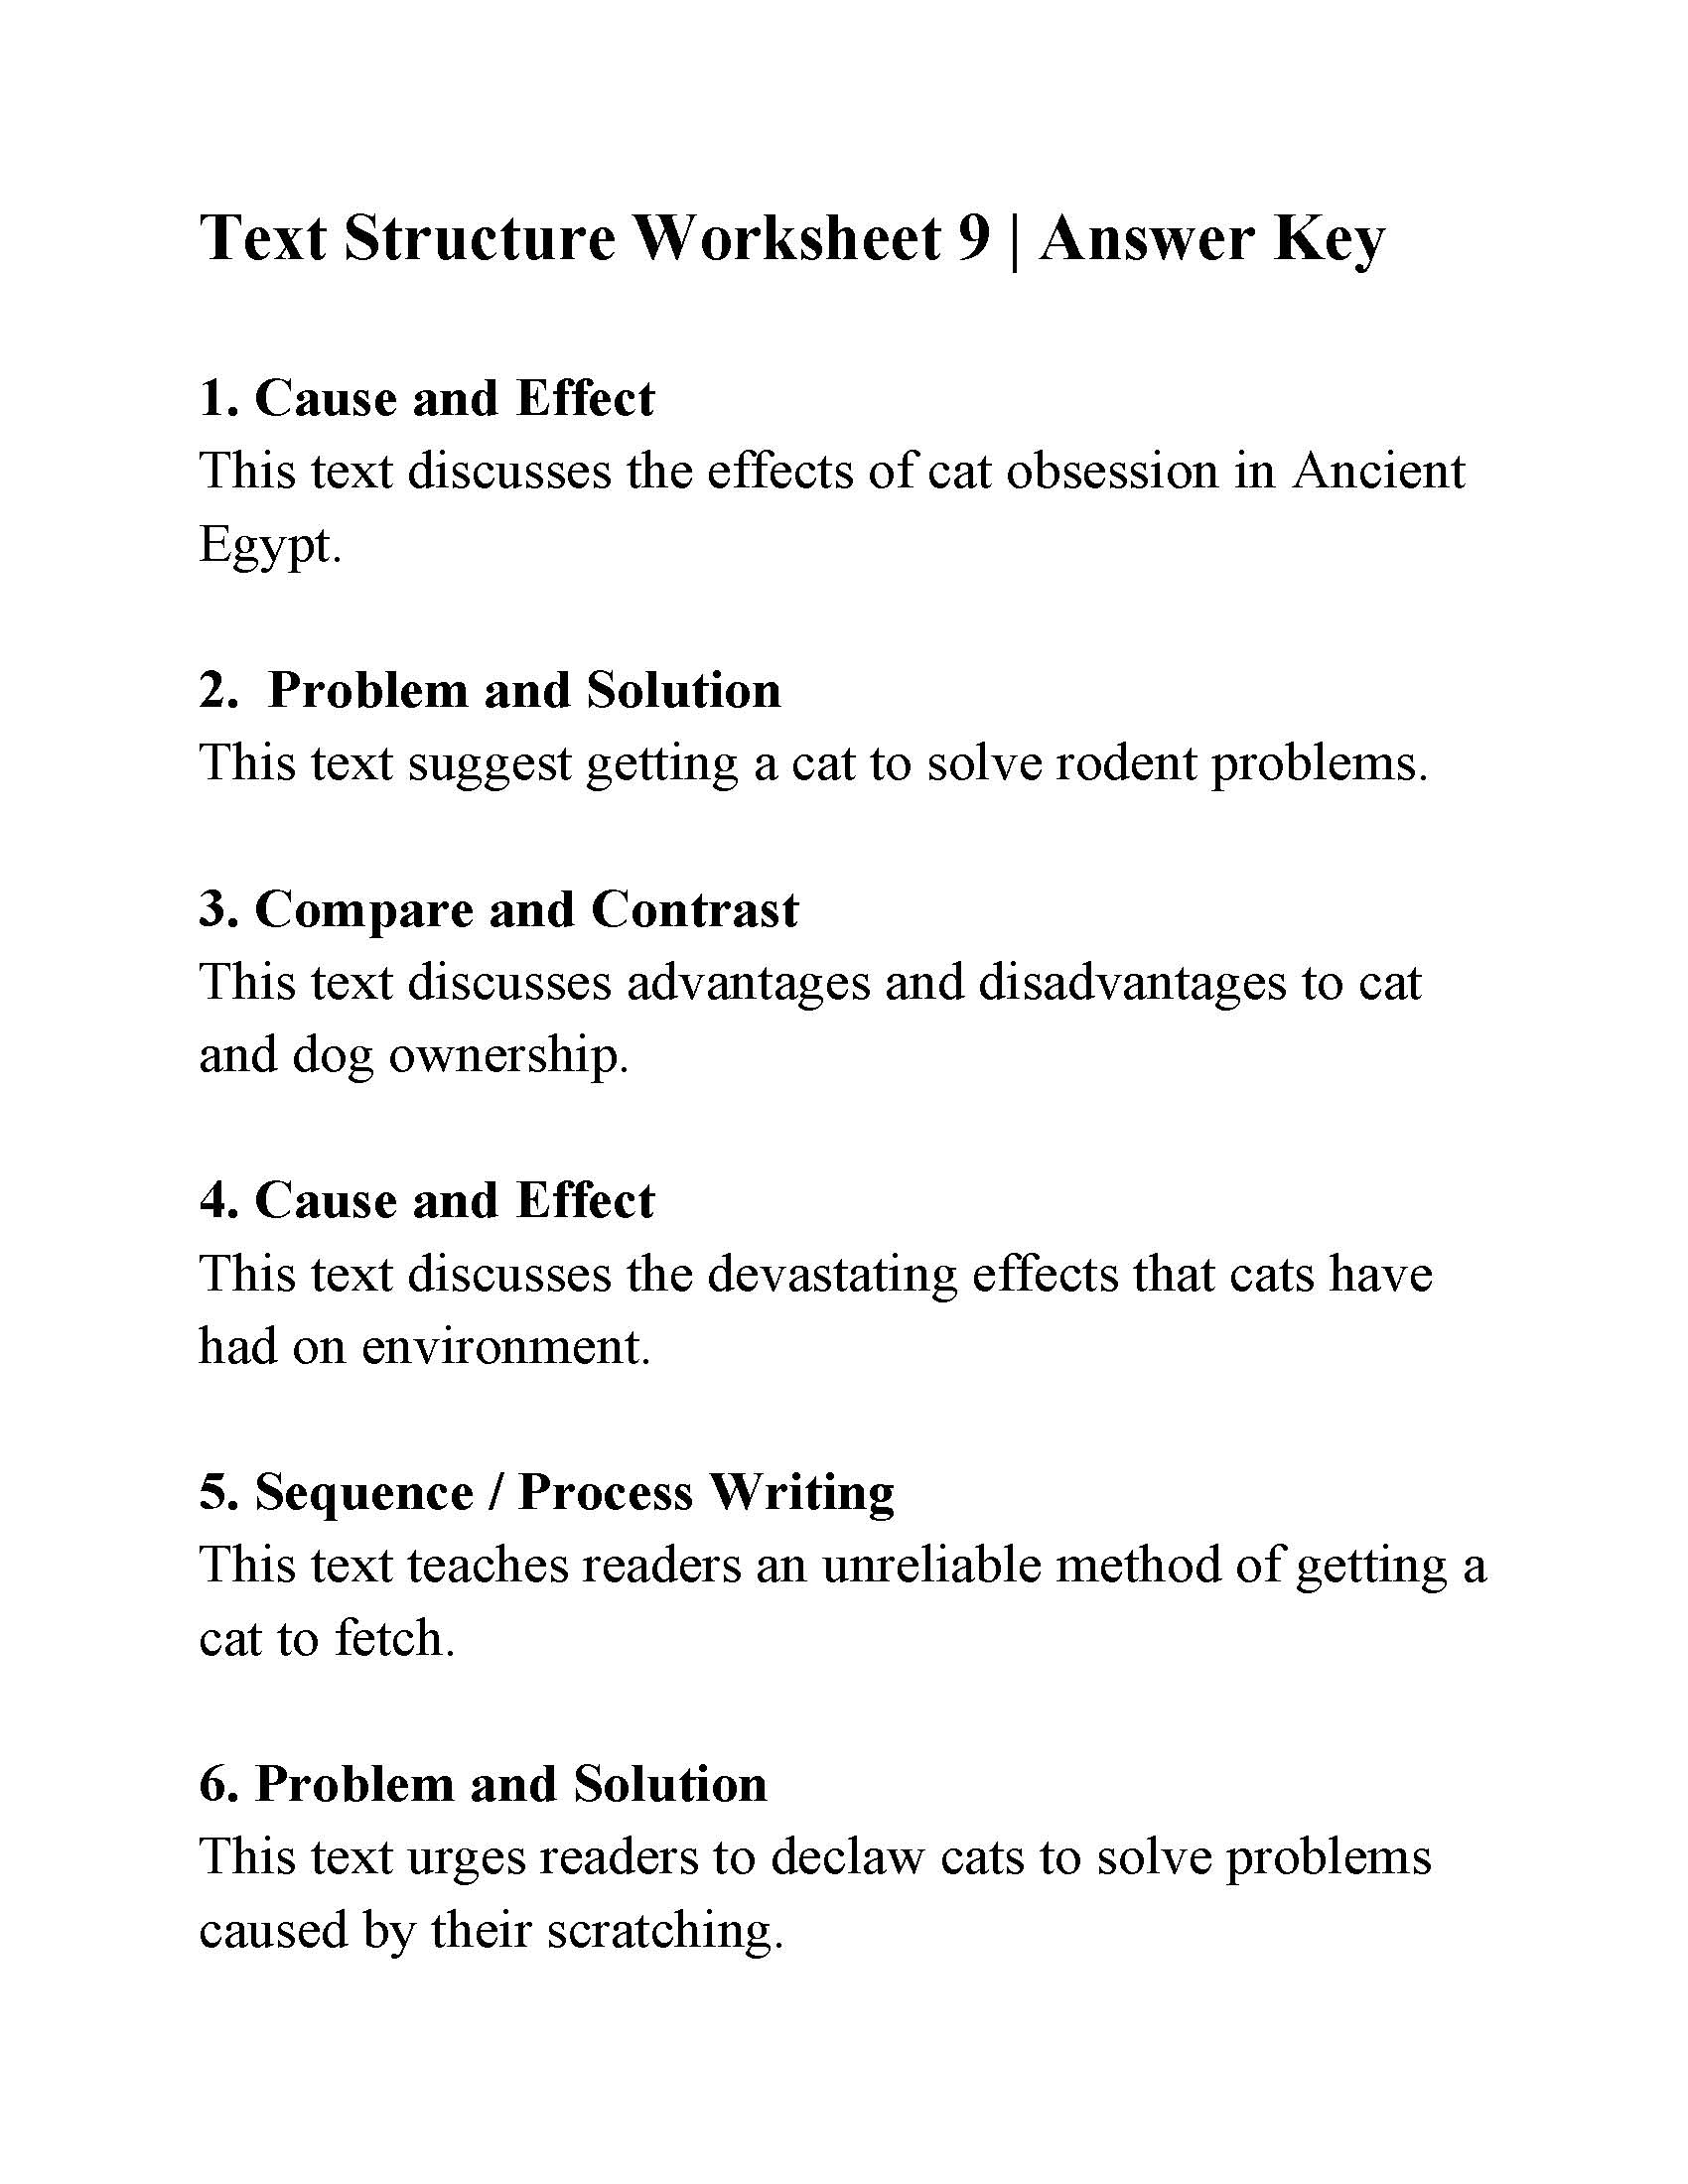 Text Structure Worksheet 9 | Answers